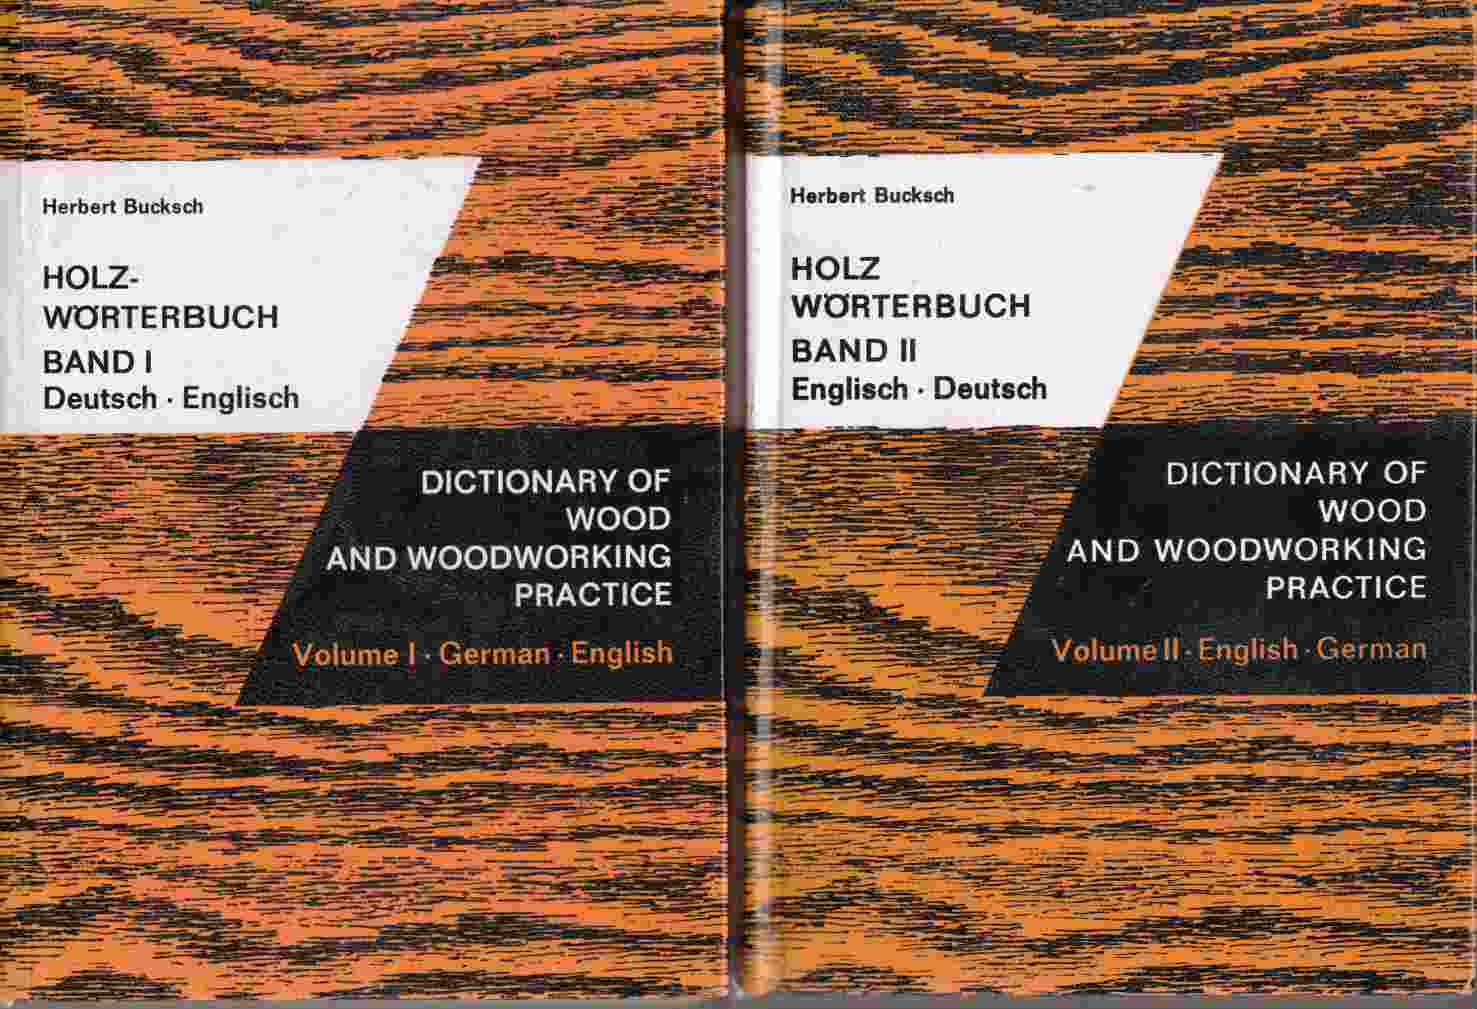 Image for Holz-Wörterbuch / Dictionary of Wood and Woodworking Practice Volume I, II / Band I, II